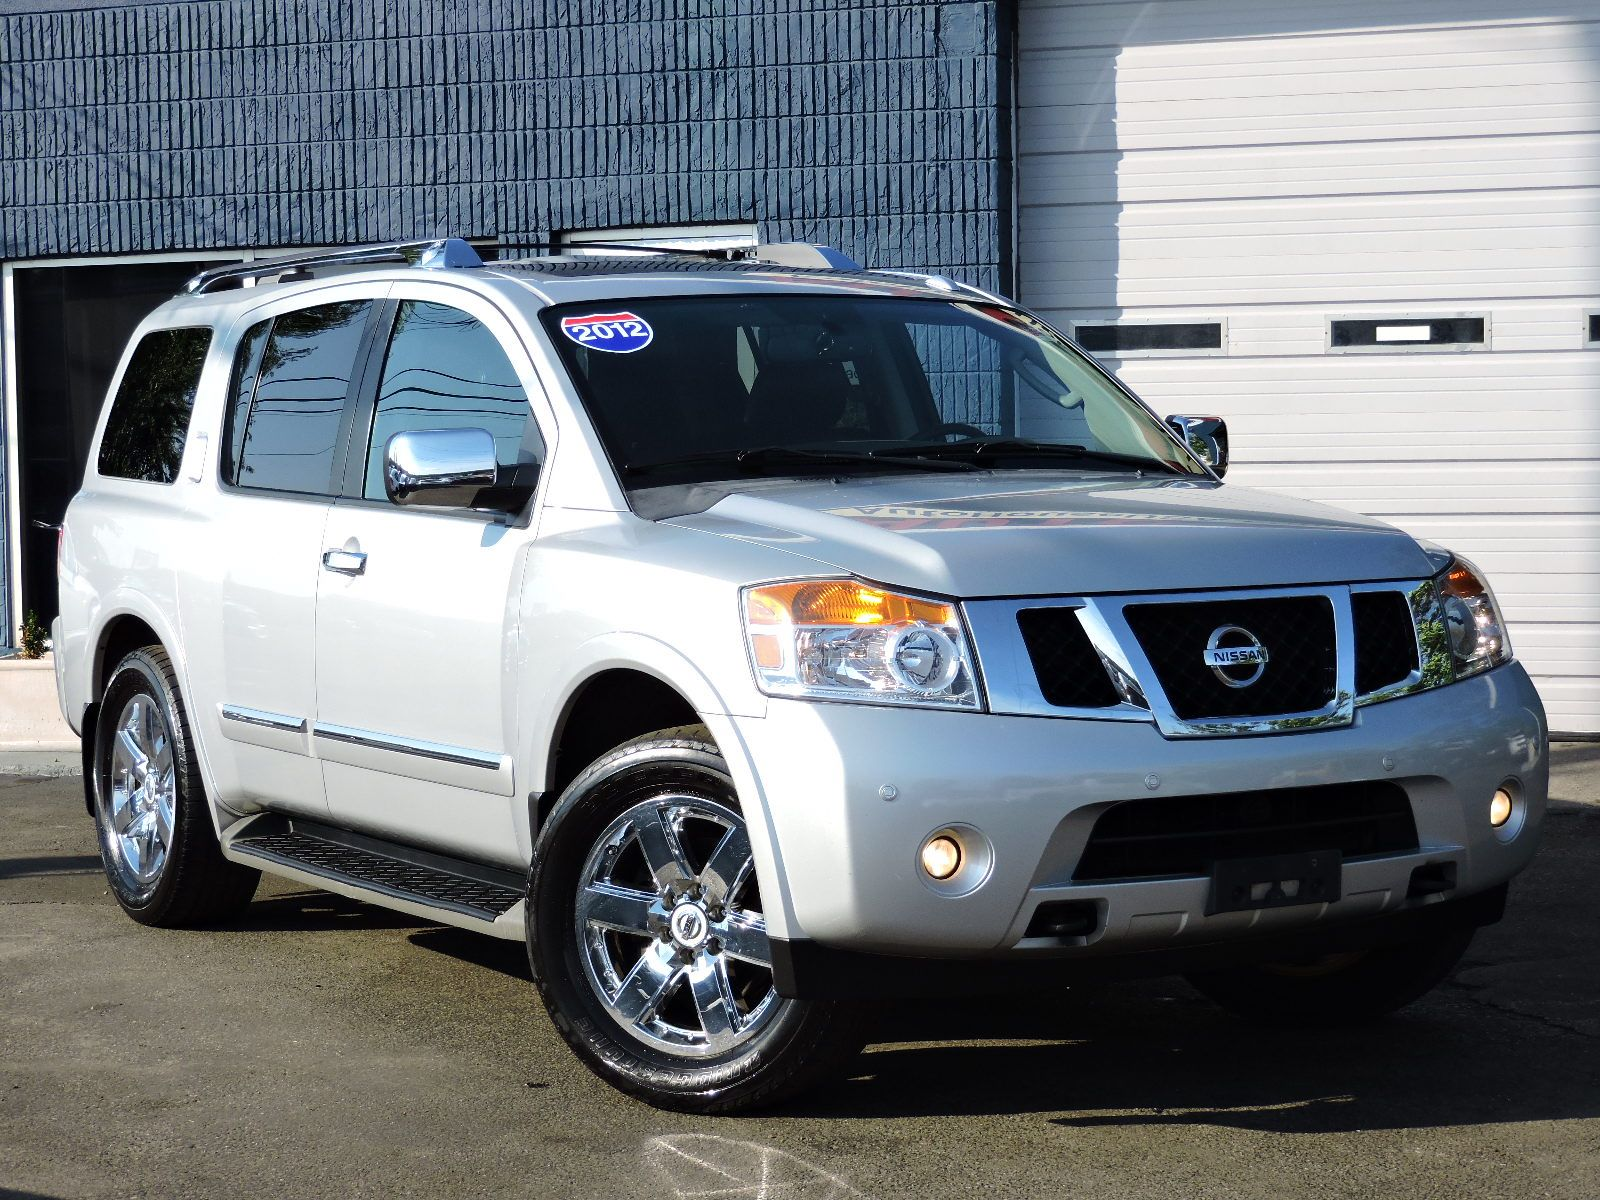 100   2010 nissan armada owners manual   2017 nissan armada first drive review nissan armada 2001 Chevy Cavalier 4 Door 2001 Cavalier Engine